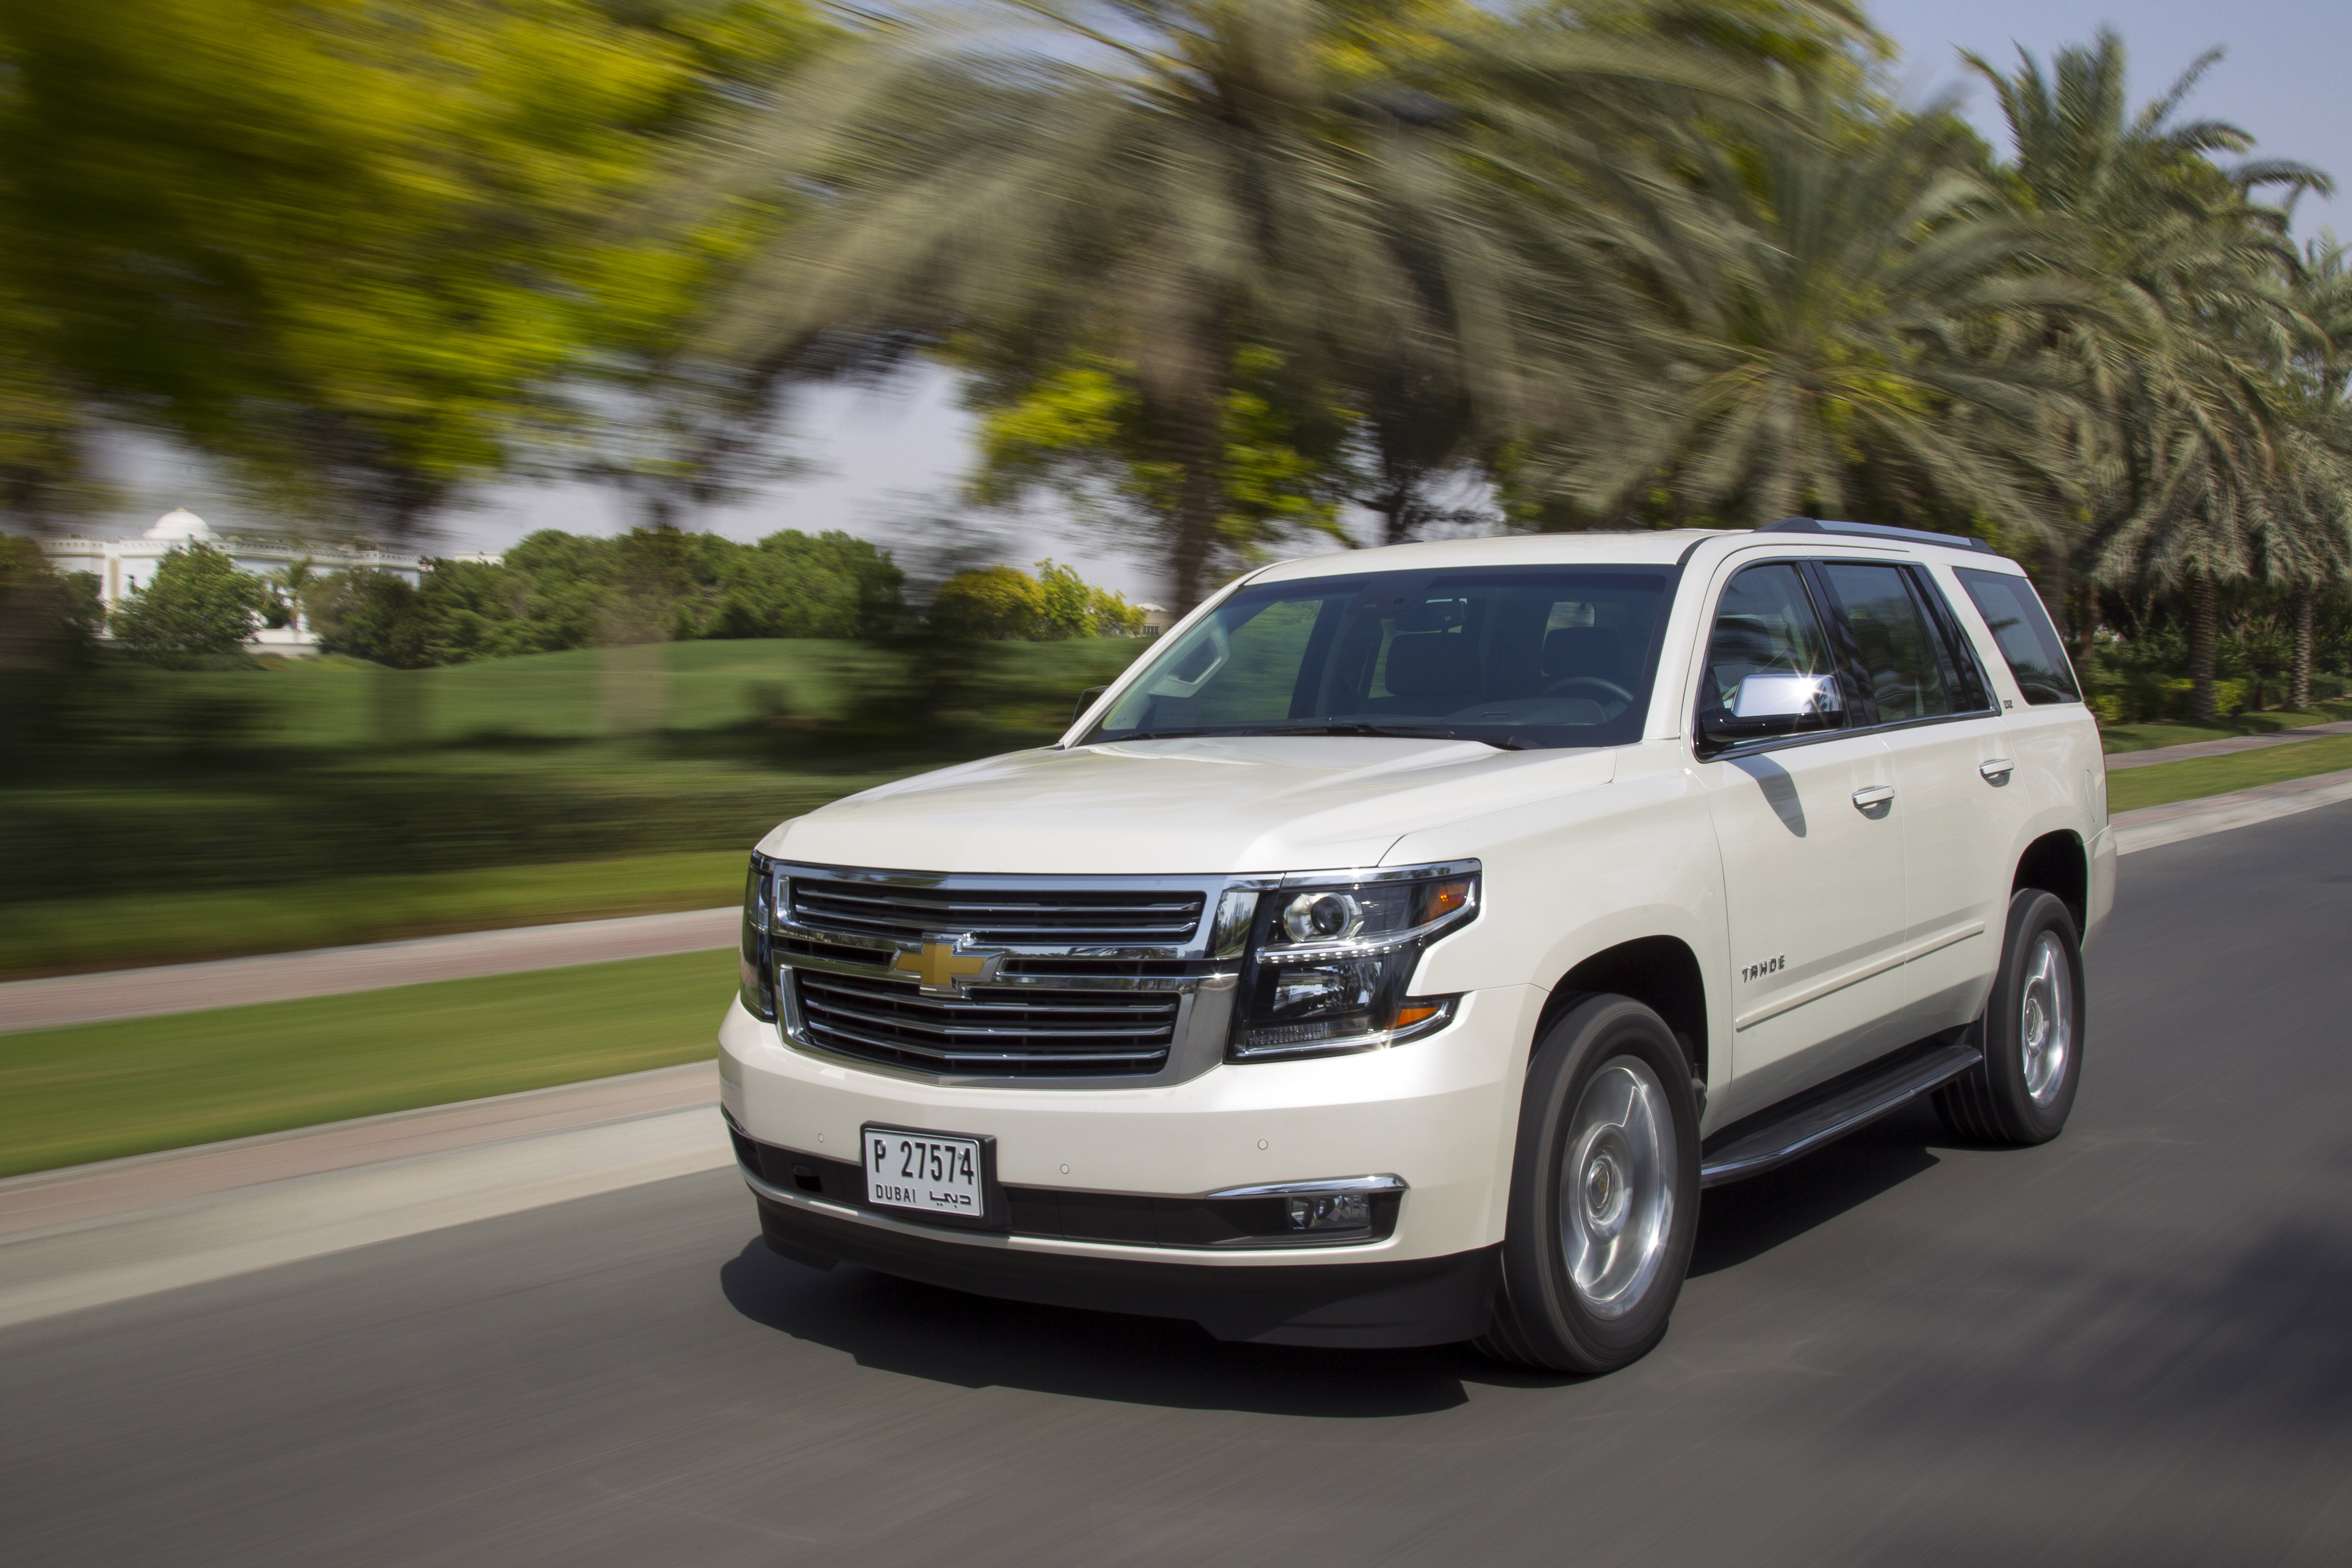 All New Tahoe and Suburban Are Perfect Family SUVs